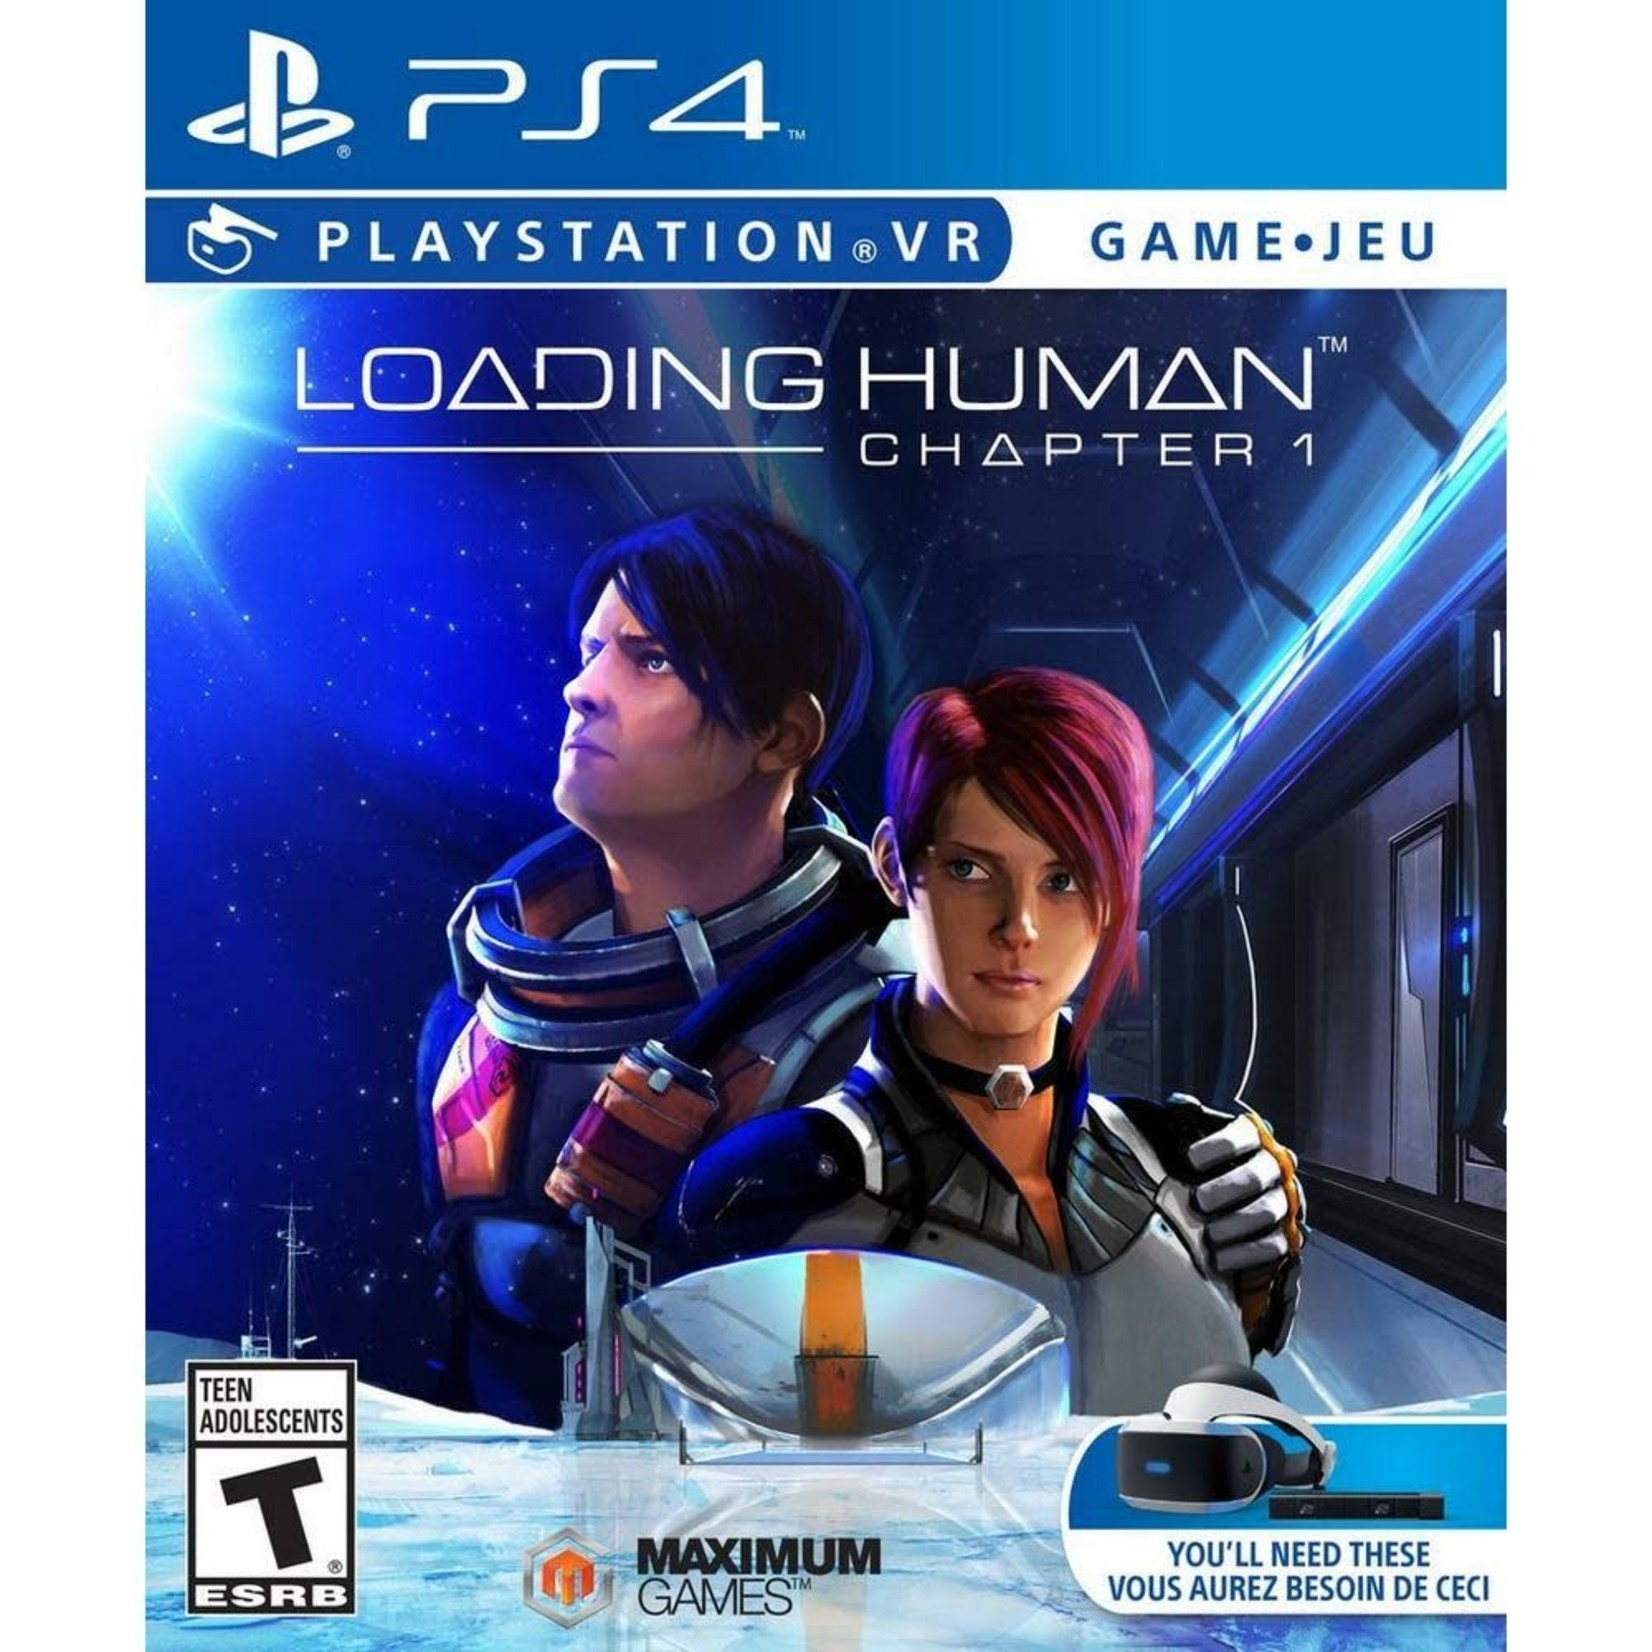 PS4-Loading Human: Chapter 1